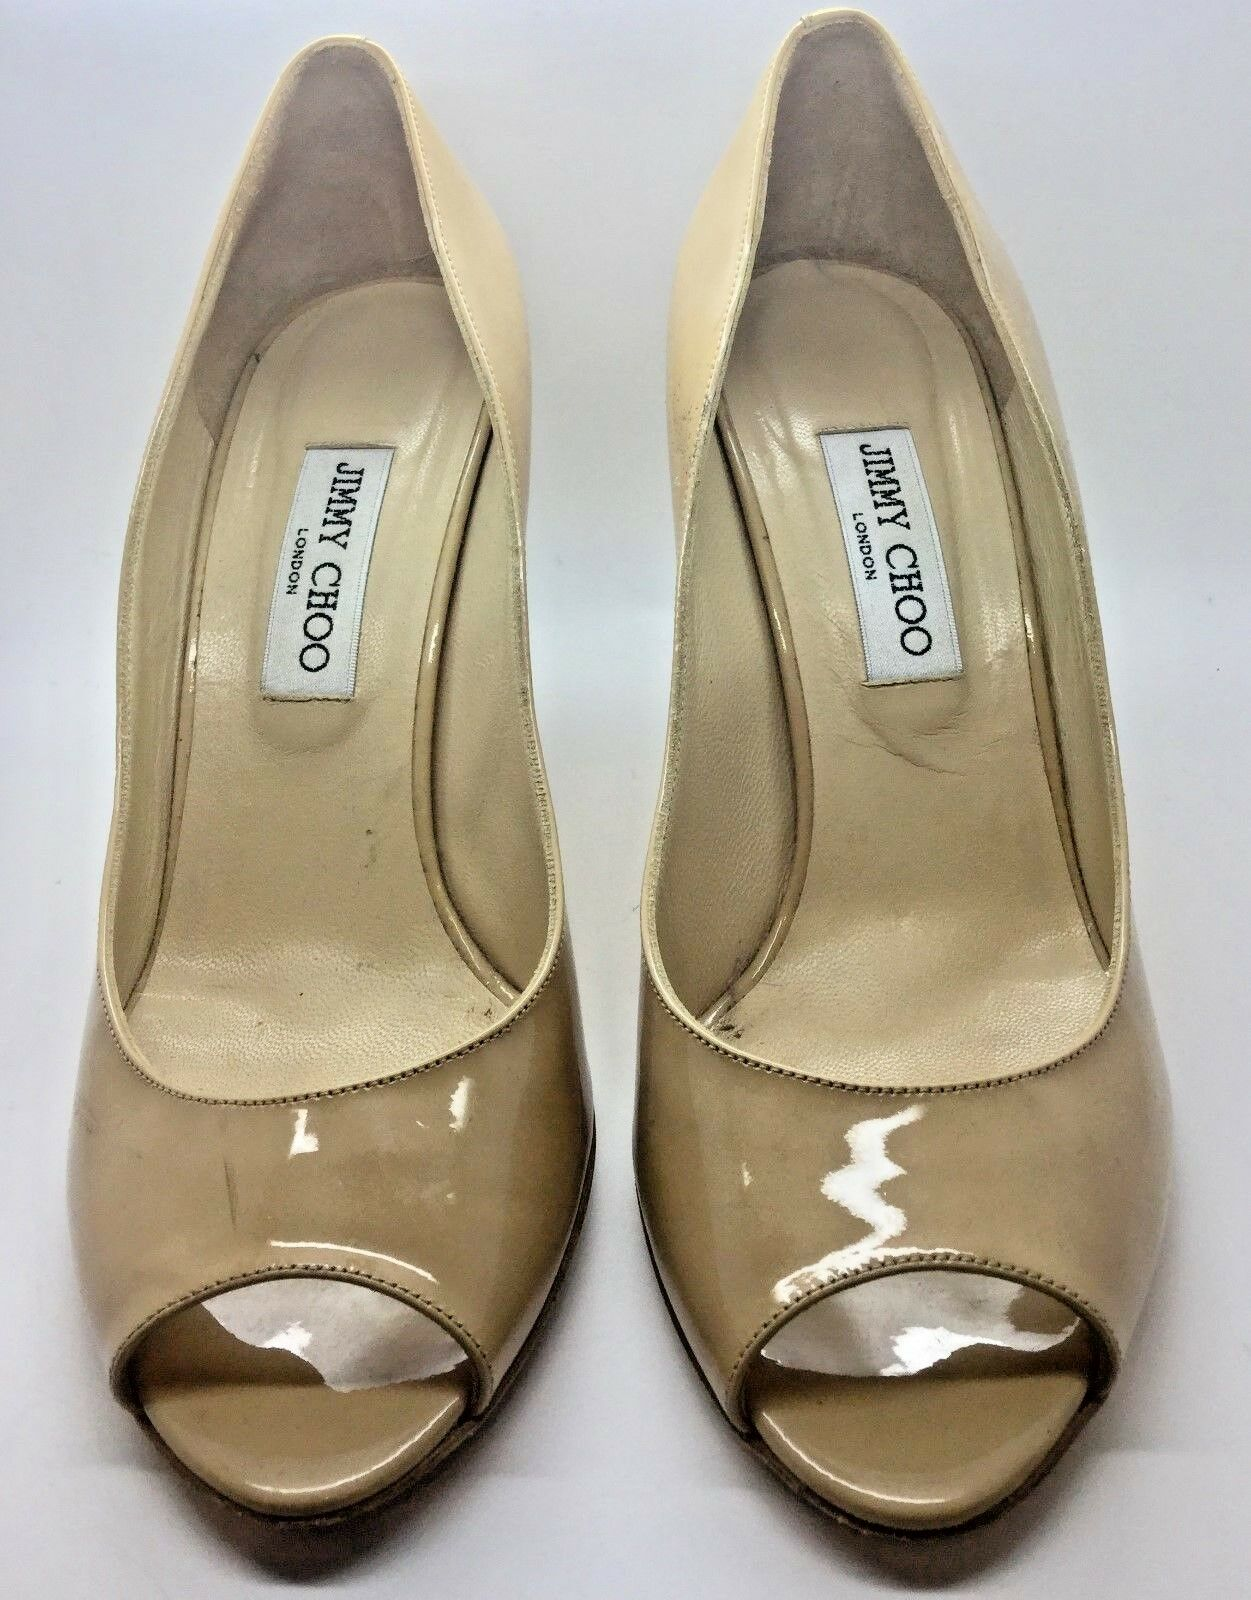 JIMMY CHOO Beige Tan Patent Leather gold Wedge Peep Toe Pump Size 40